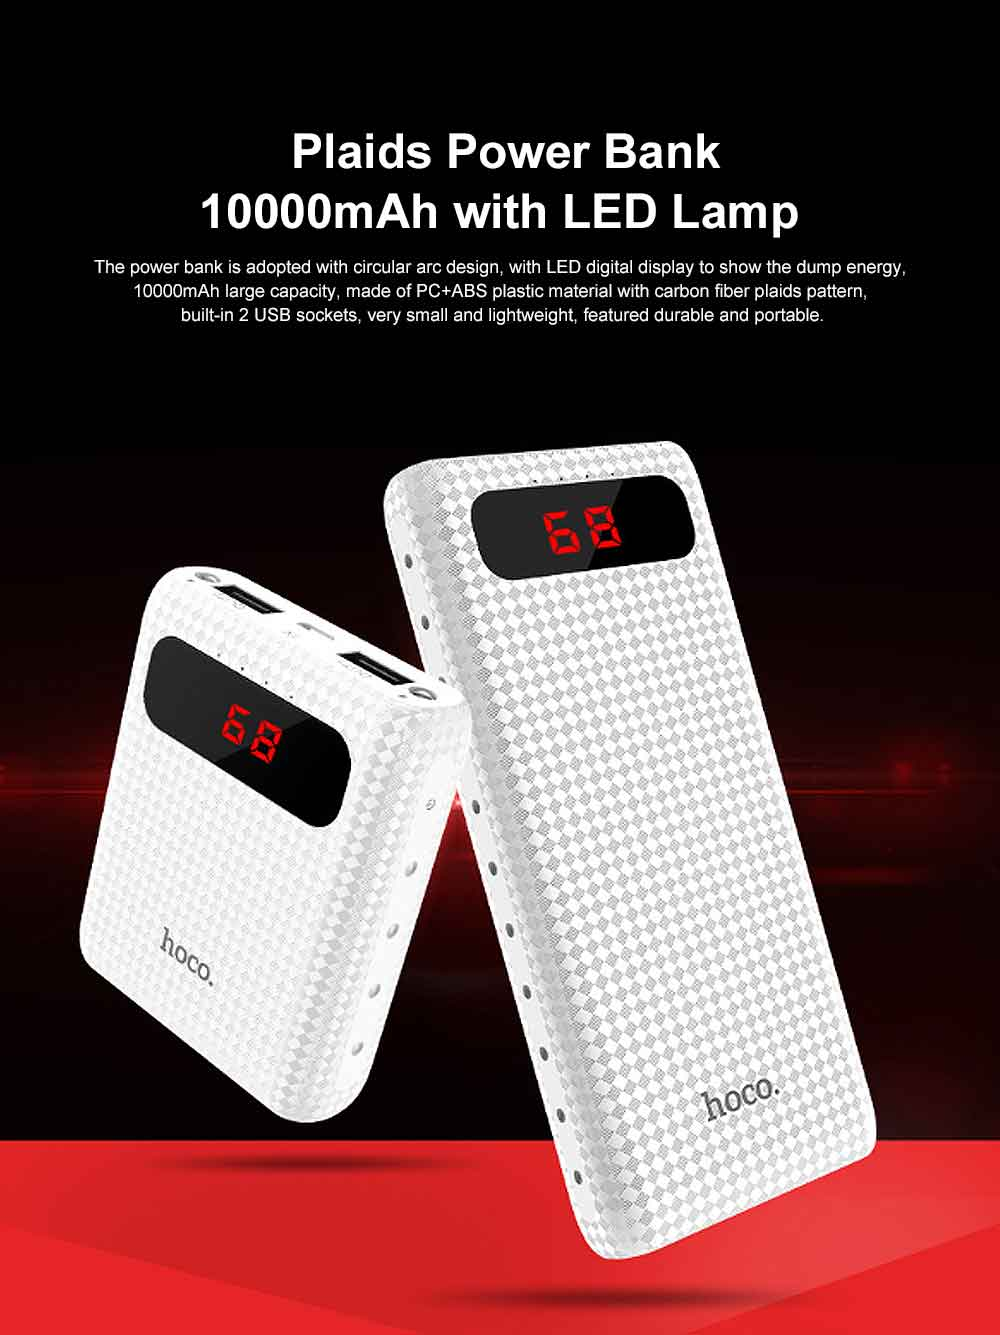 Exquisite Mini Pocket Carbon Fiber Plaids External Battery Fireproof ABS Charger Dual USB Power Bank for Cell Phone 10000mAh with LED Lamp 0